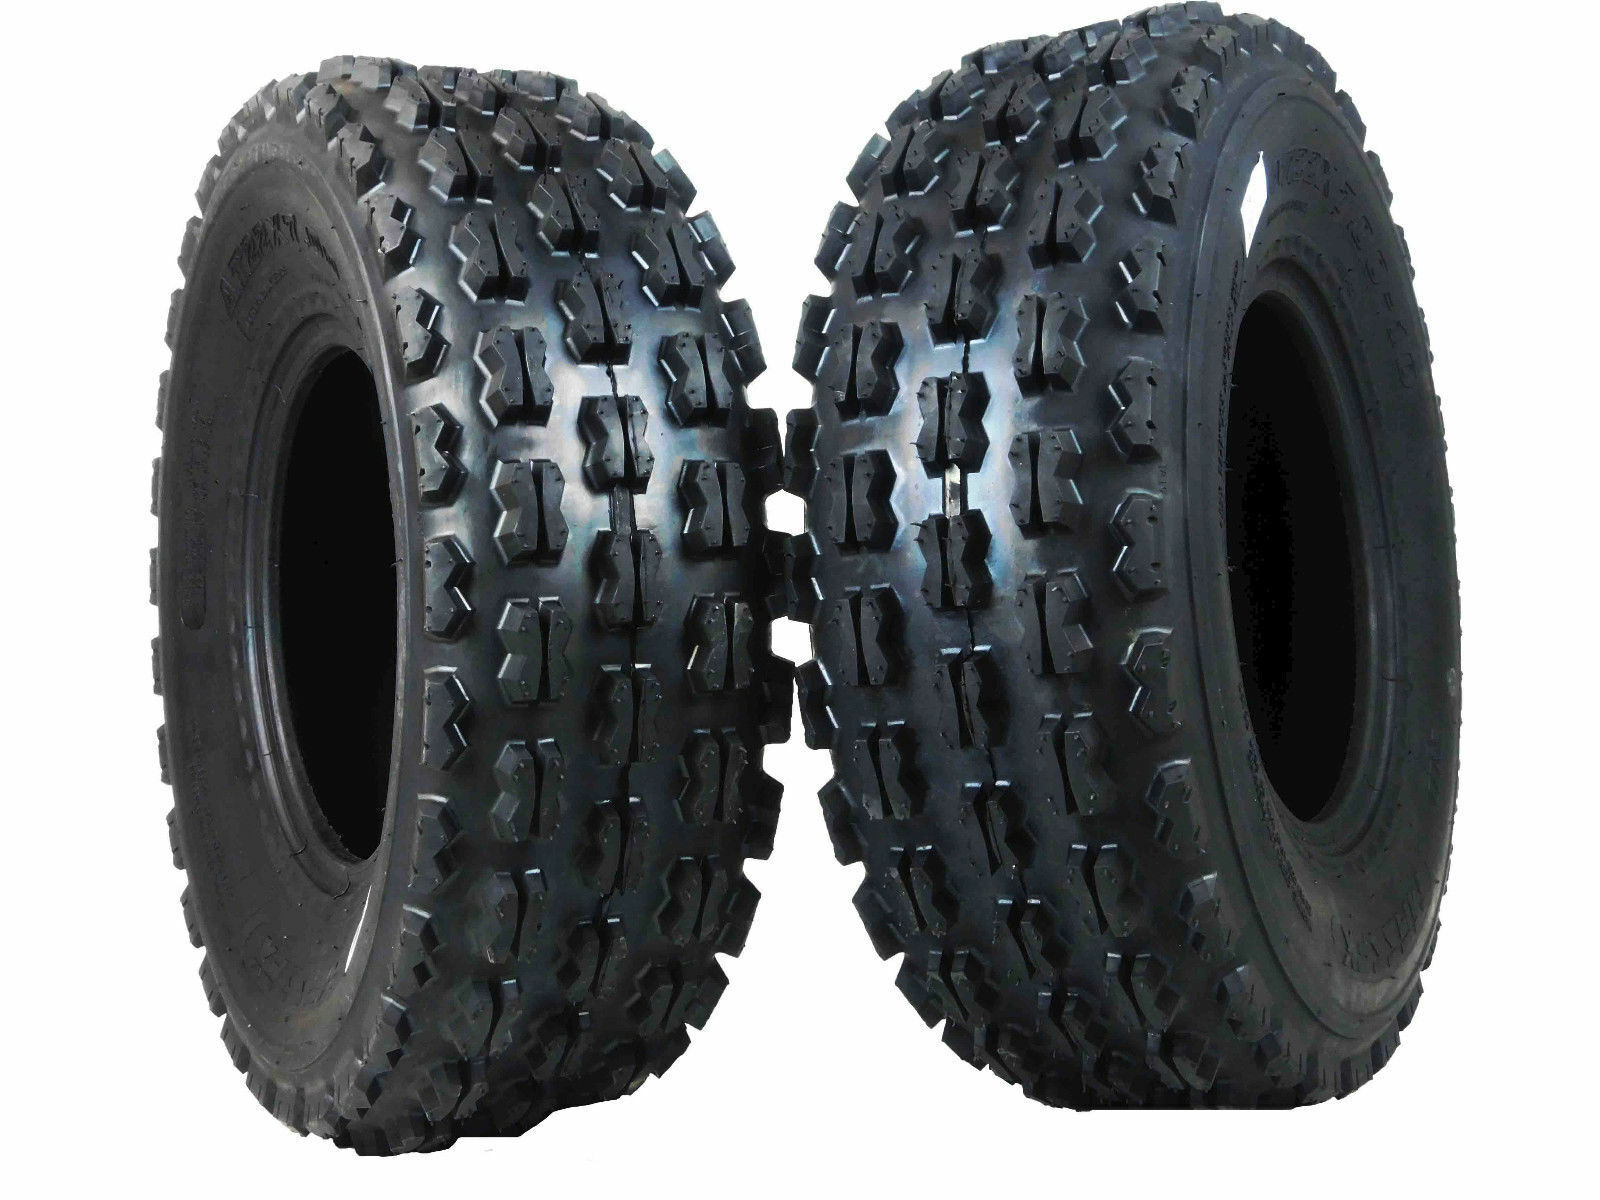 hight resolution of 1995 1998 yamaha yfb 250 timberwolf massfx 22 atv tires set 2 22x7 10 22x7x10 for sale